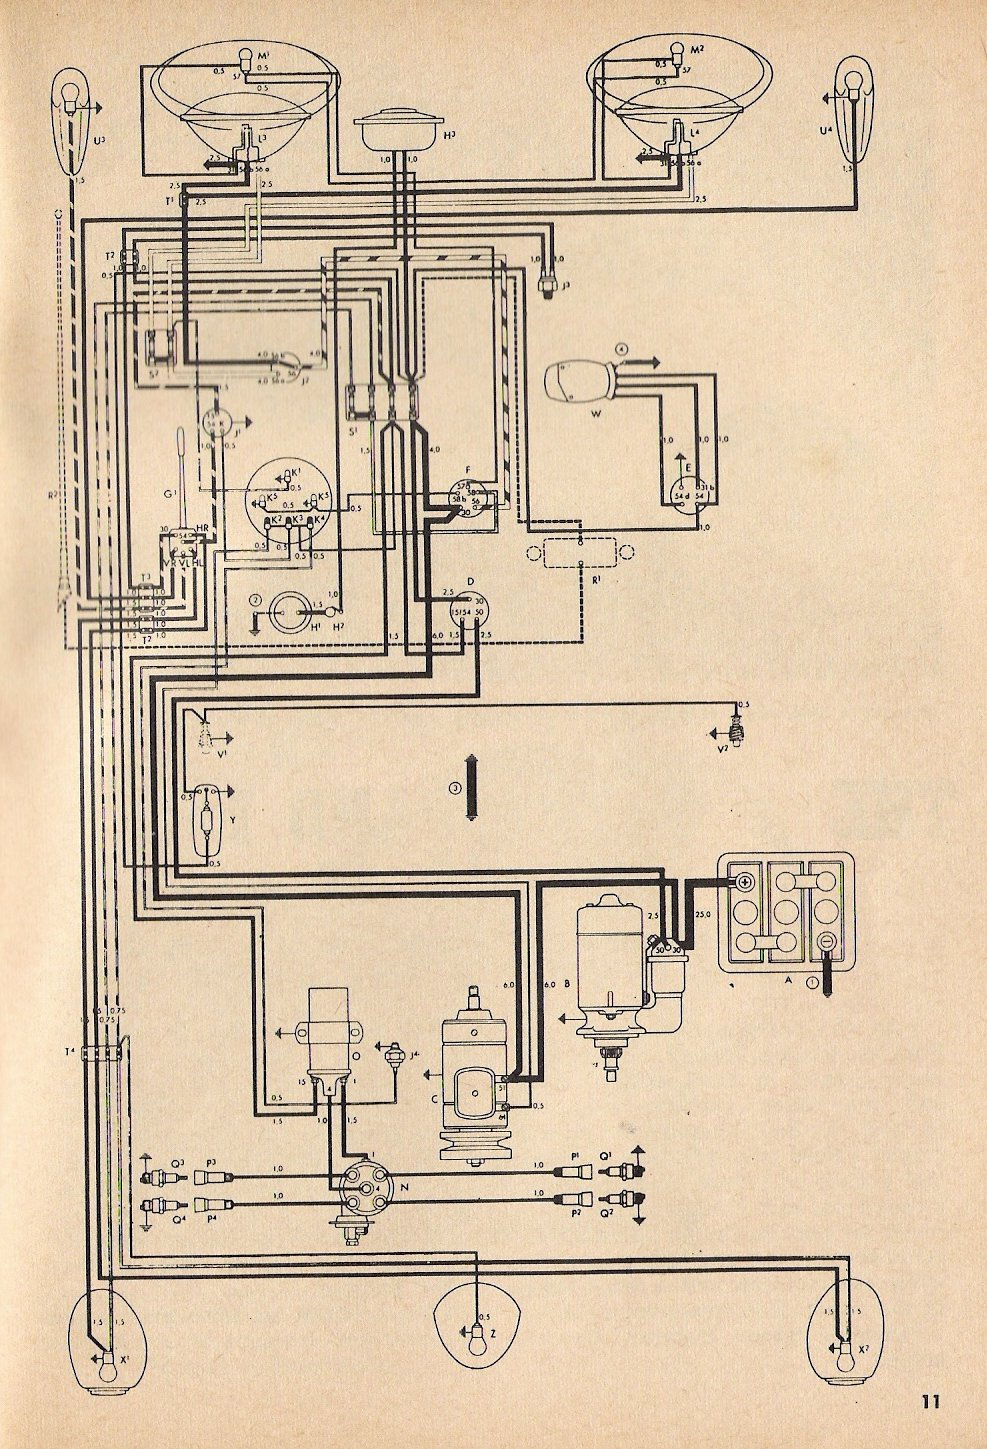 bug_toaug57 thesamba com type 1 wiring diagrams vw generator to alternator conversion wiring diagram at crackthecode.co